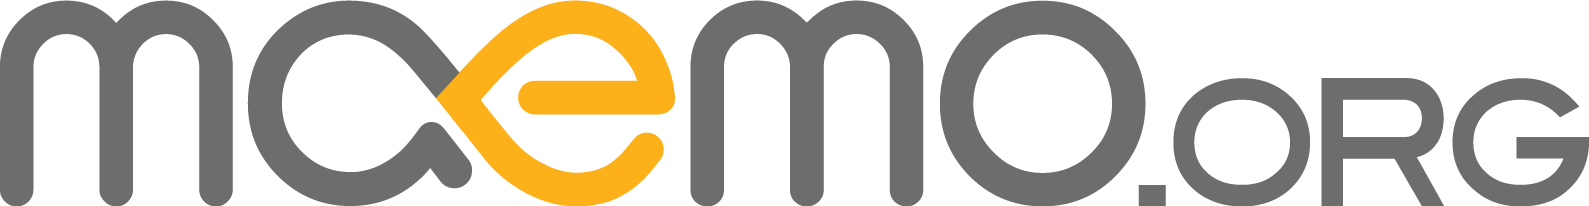 maemo.org logo in PNG format